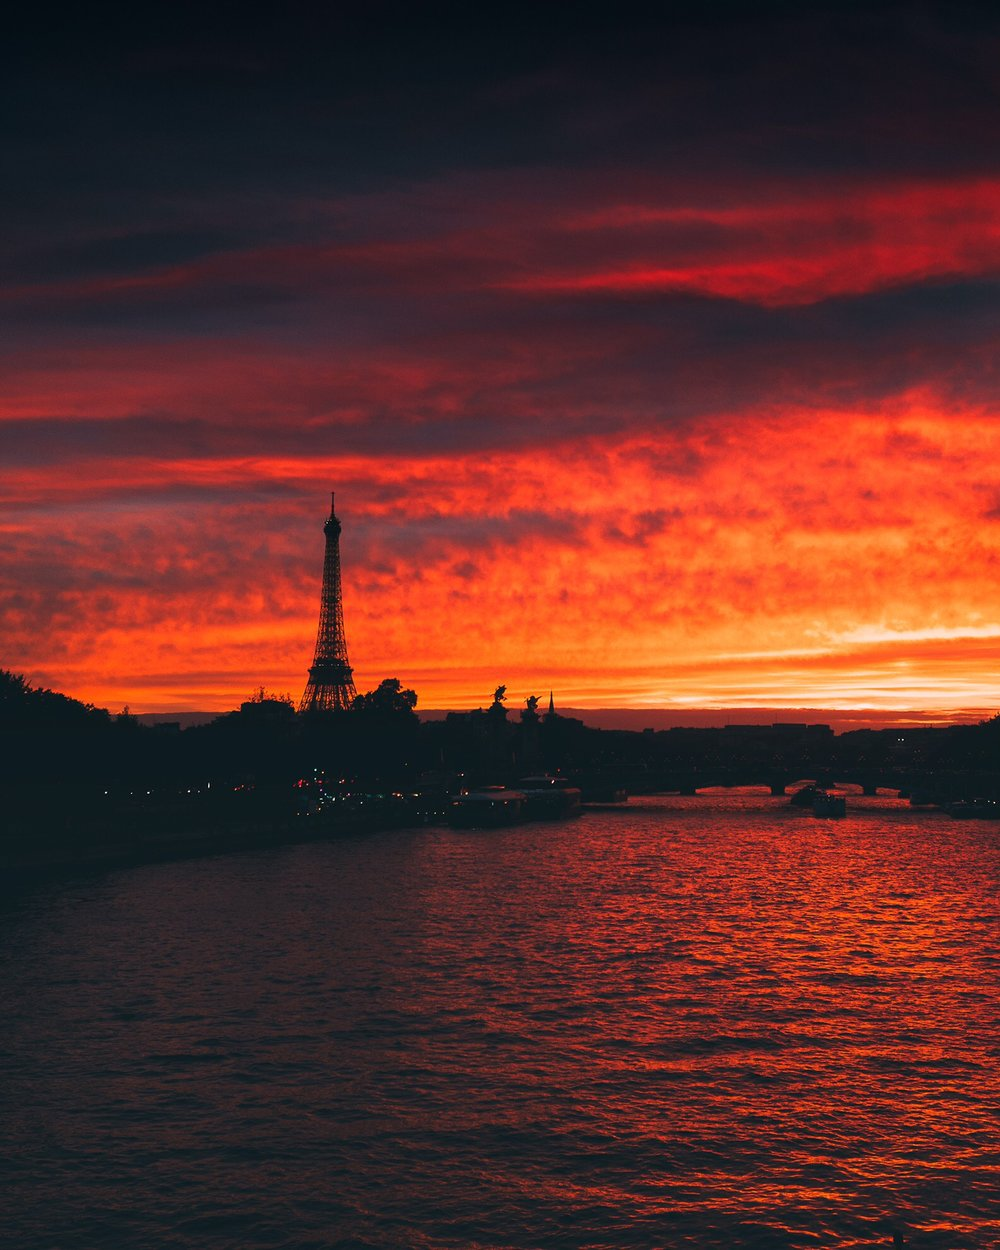 Incredible sunset yesterday during my #DxOOneTrip in Paris, shoot with the @dxoonecamera